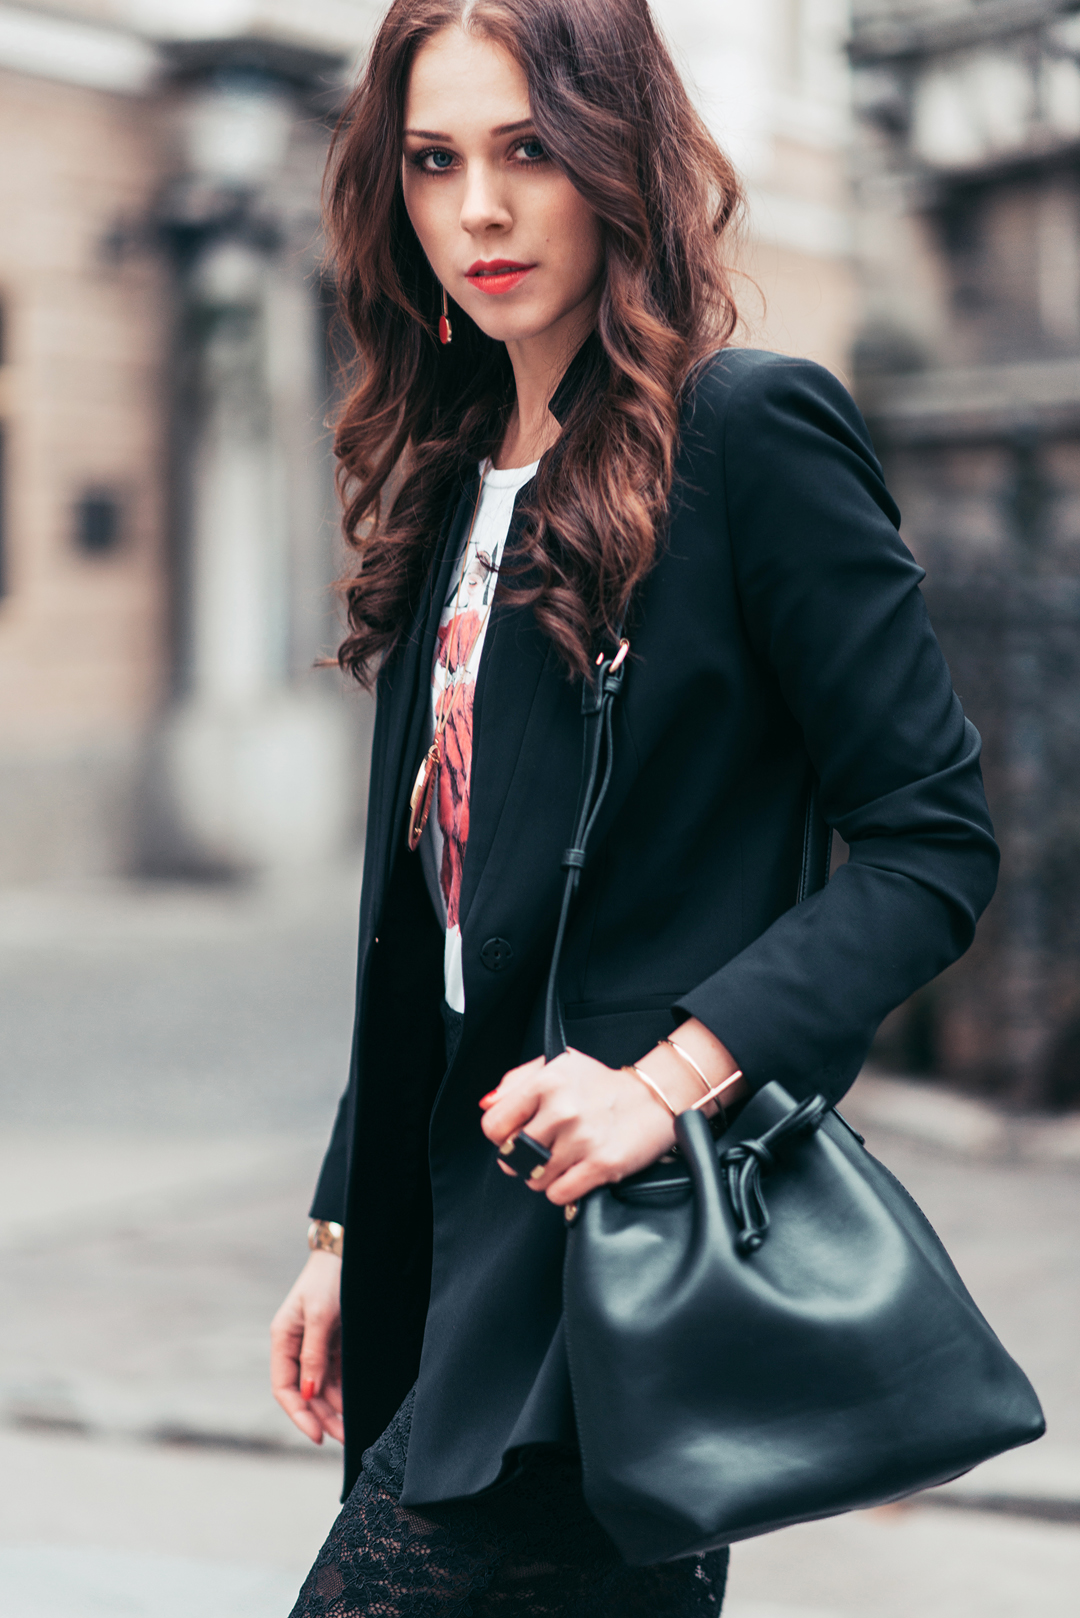 eva-ahacevcic_love-eva_ootd_six-accessories_zara-skirt_blazer_parfois-shoes_style_fashion-6